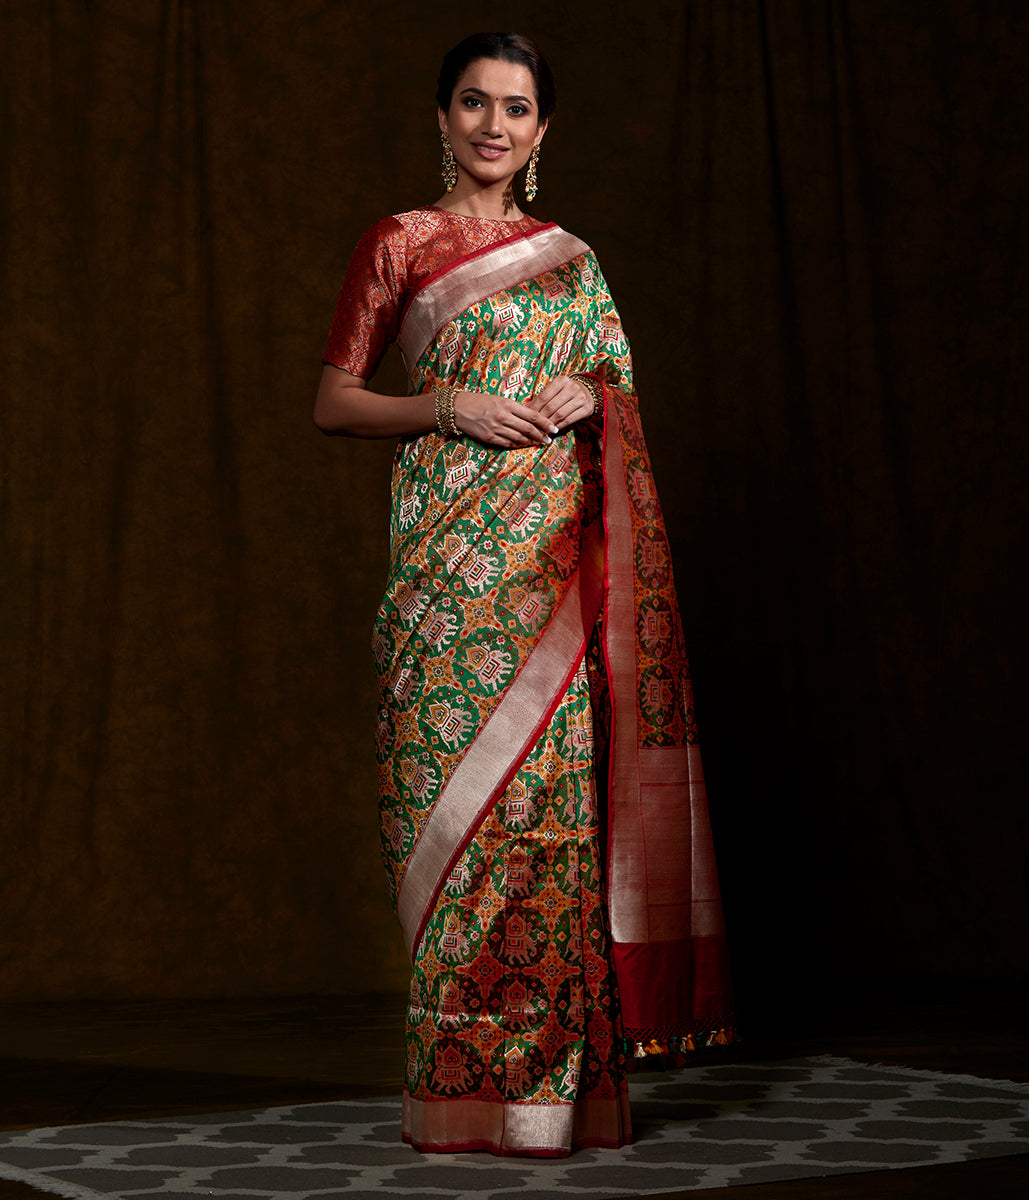 Handwoven Green and Mustard Patola Saree with Elephant Motifs